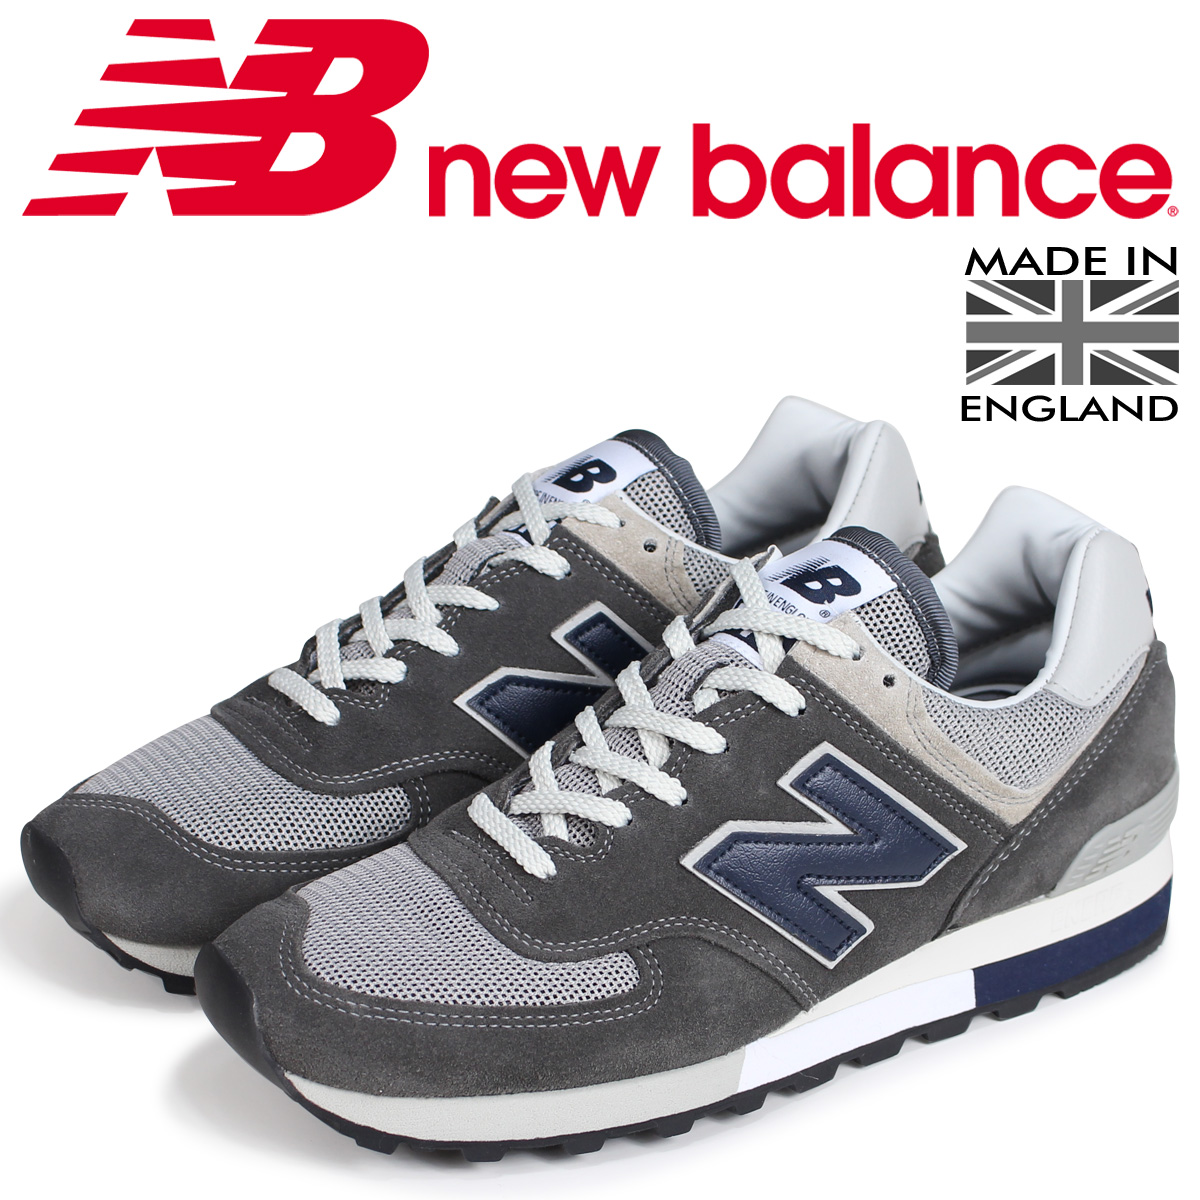 info for 7278a 16142 new balance 576 men's New Balance sneakers OM576OGG D Wise MADE IN UK gray